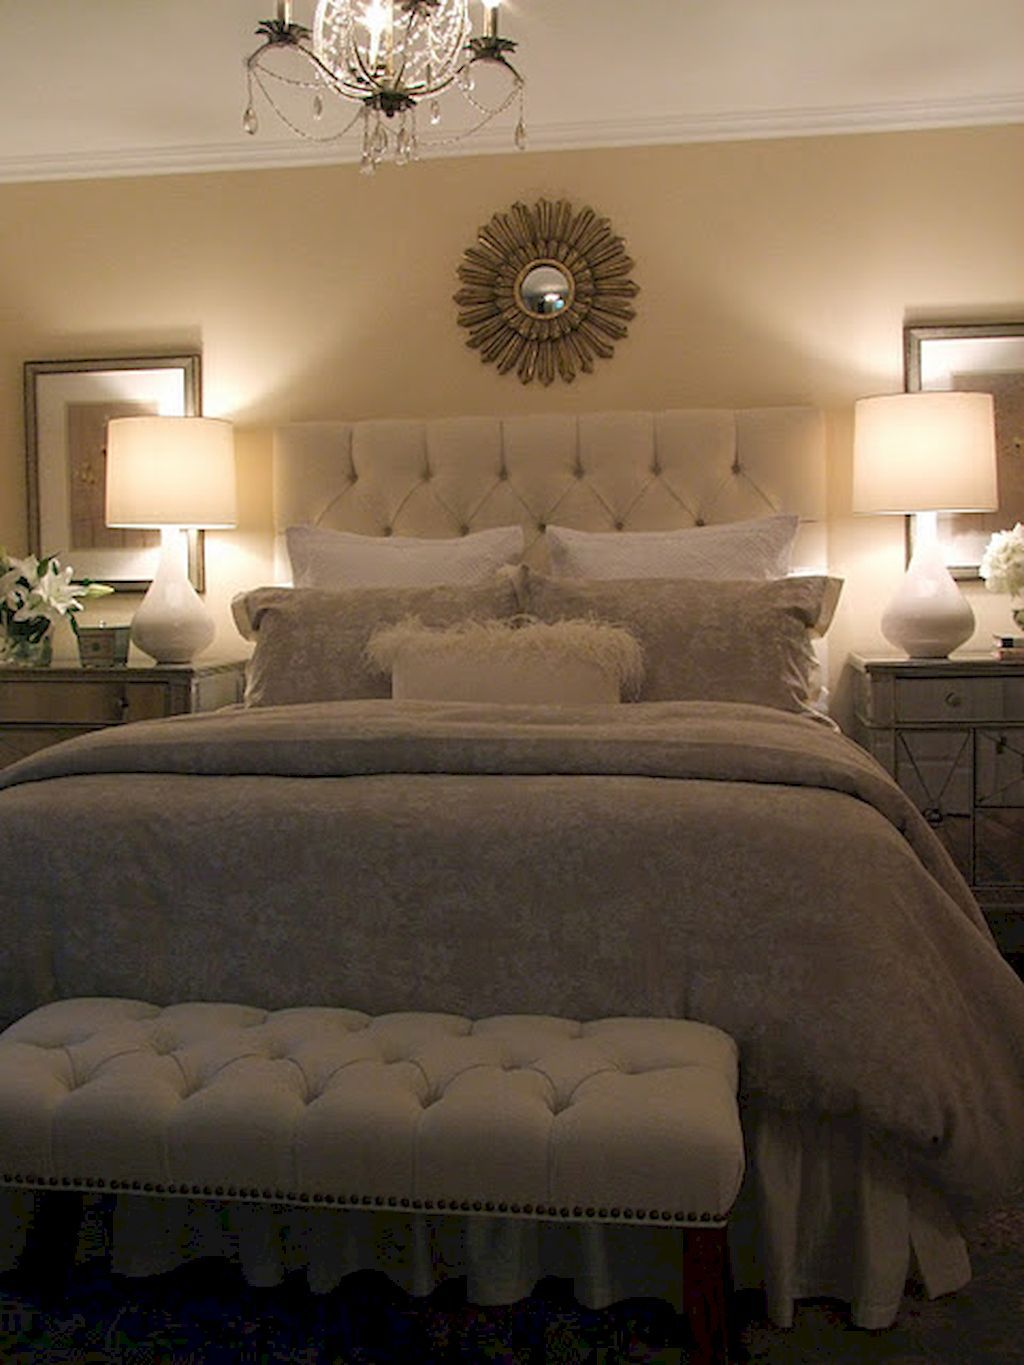 Awesome 60 Beautiful Master Bedroom Decorating Ideas https ...